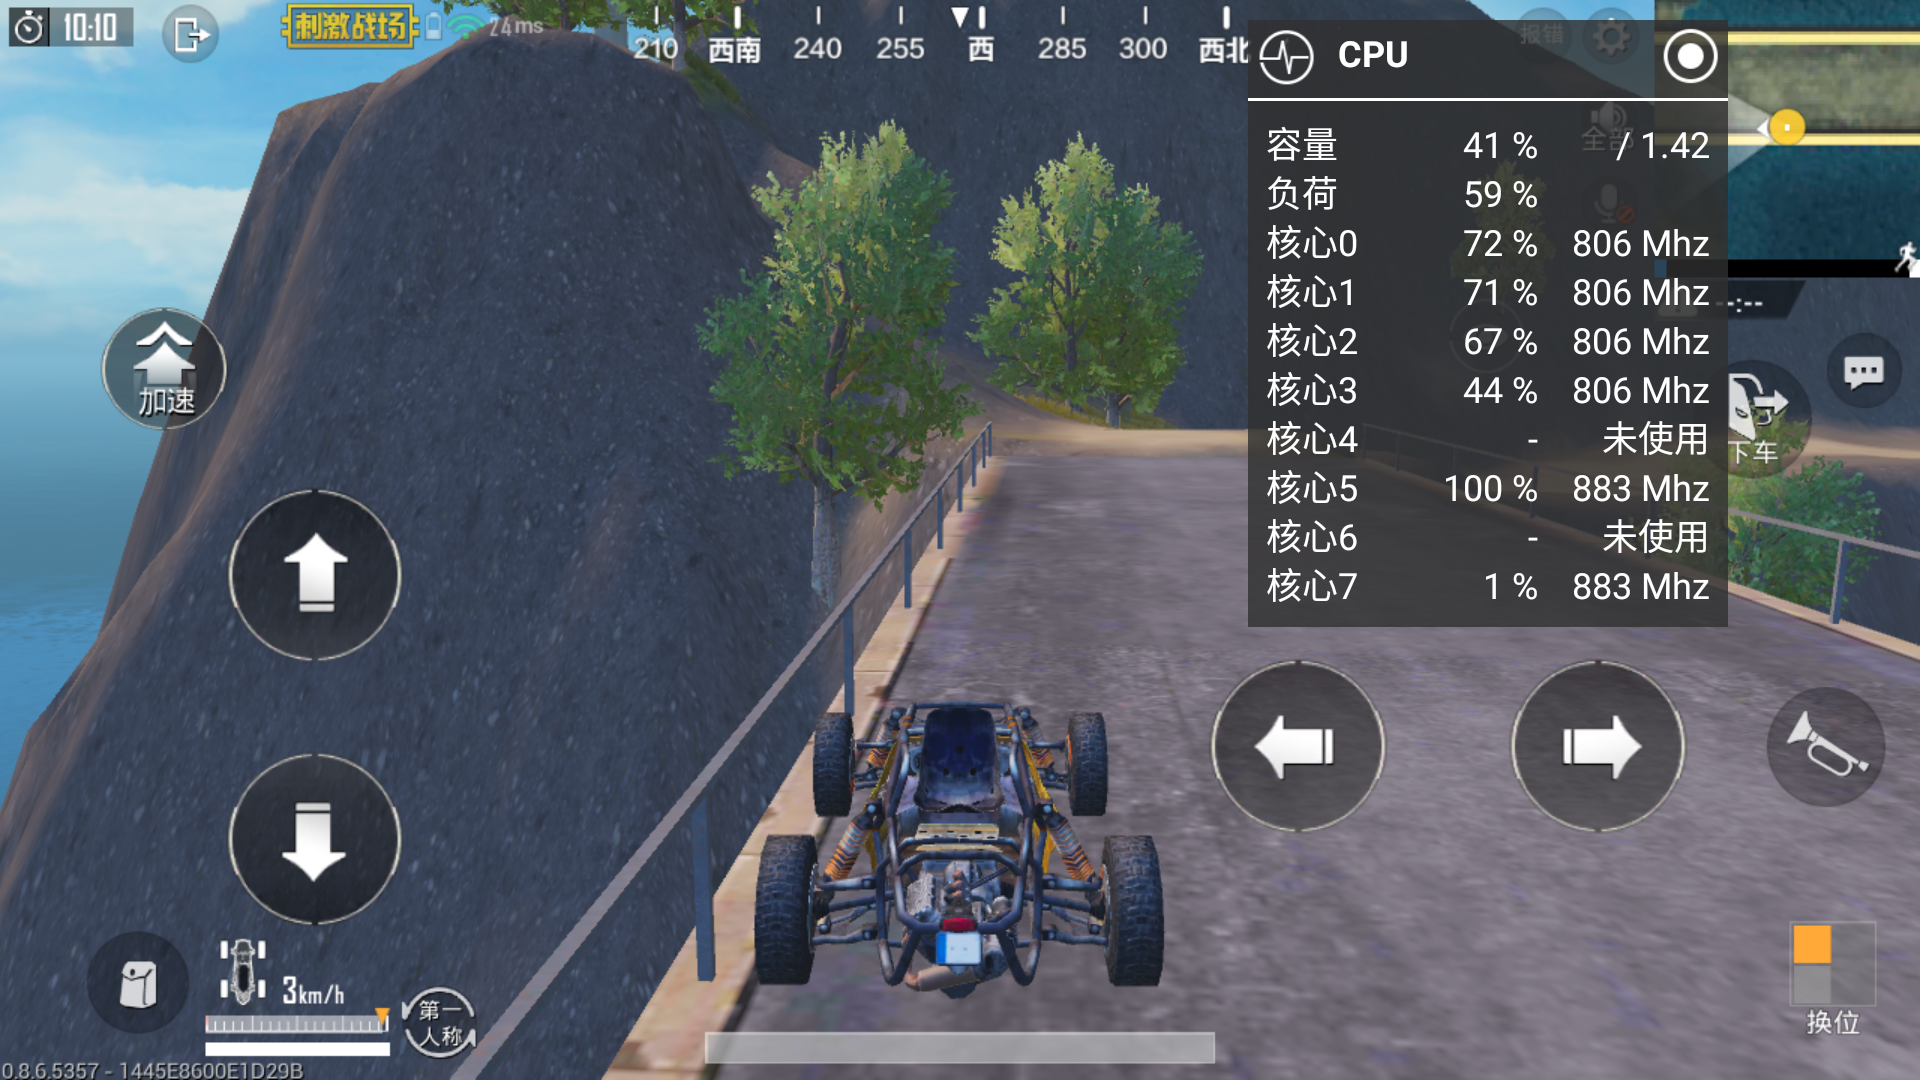 Screenshot_2018-07-12-18-51-40-929_com.tencent.tmgp.pubgmhd.png